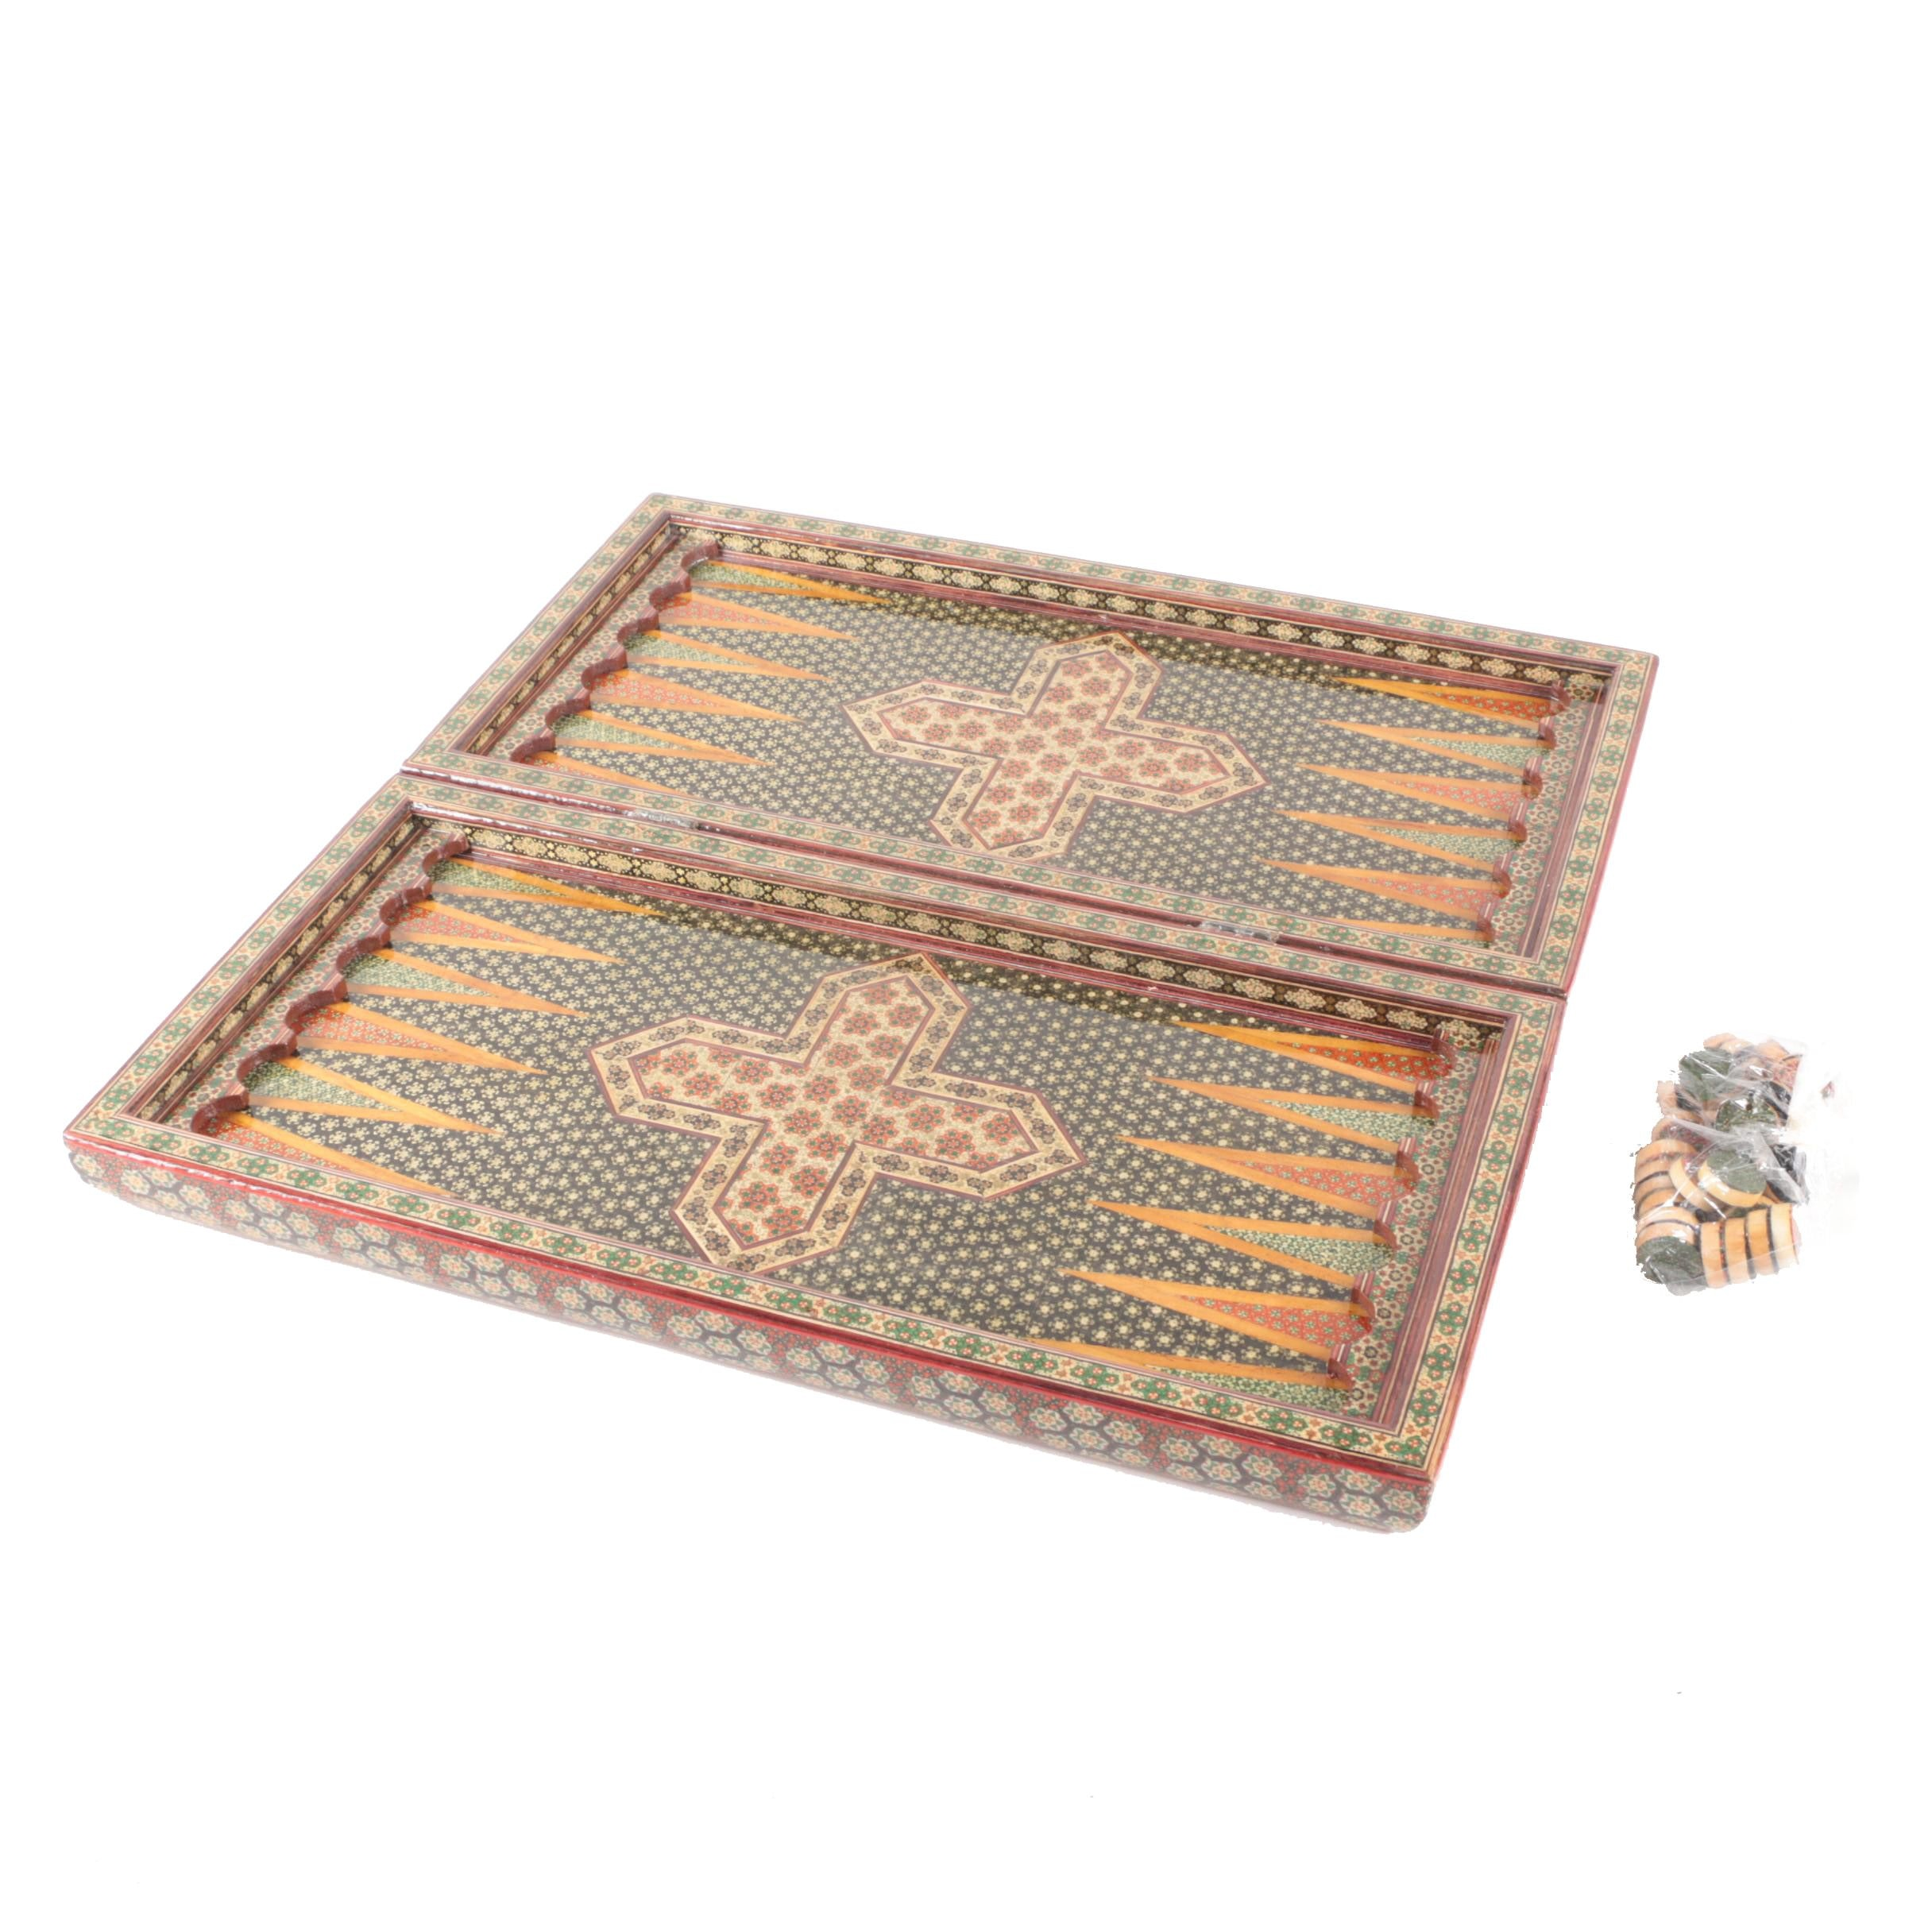 Inlaid Moroccan Style Checkers and Backgammon Board